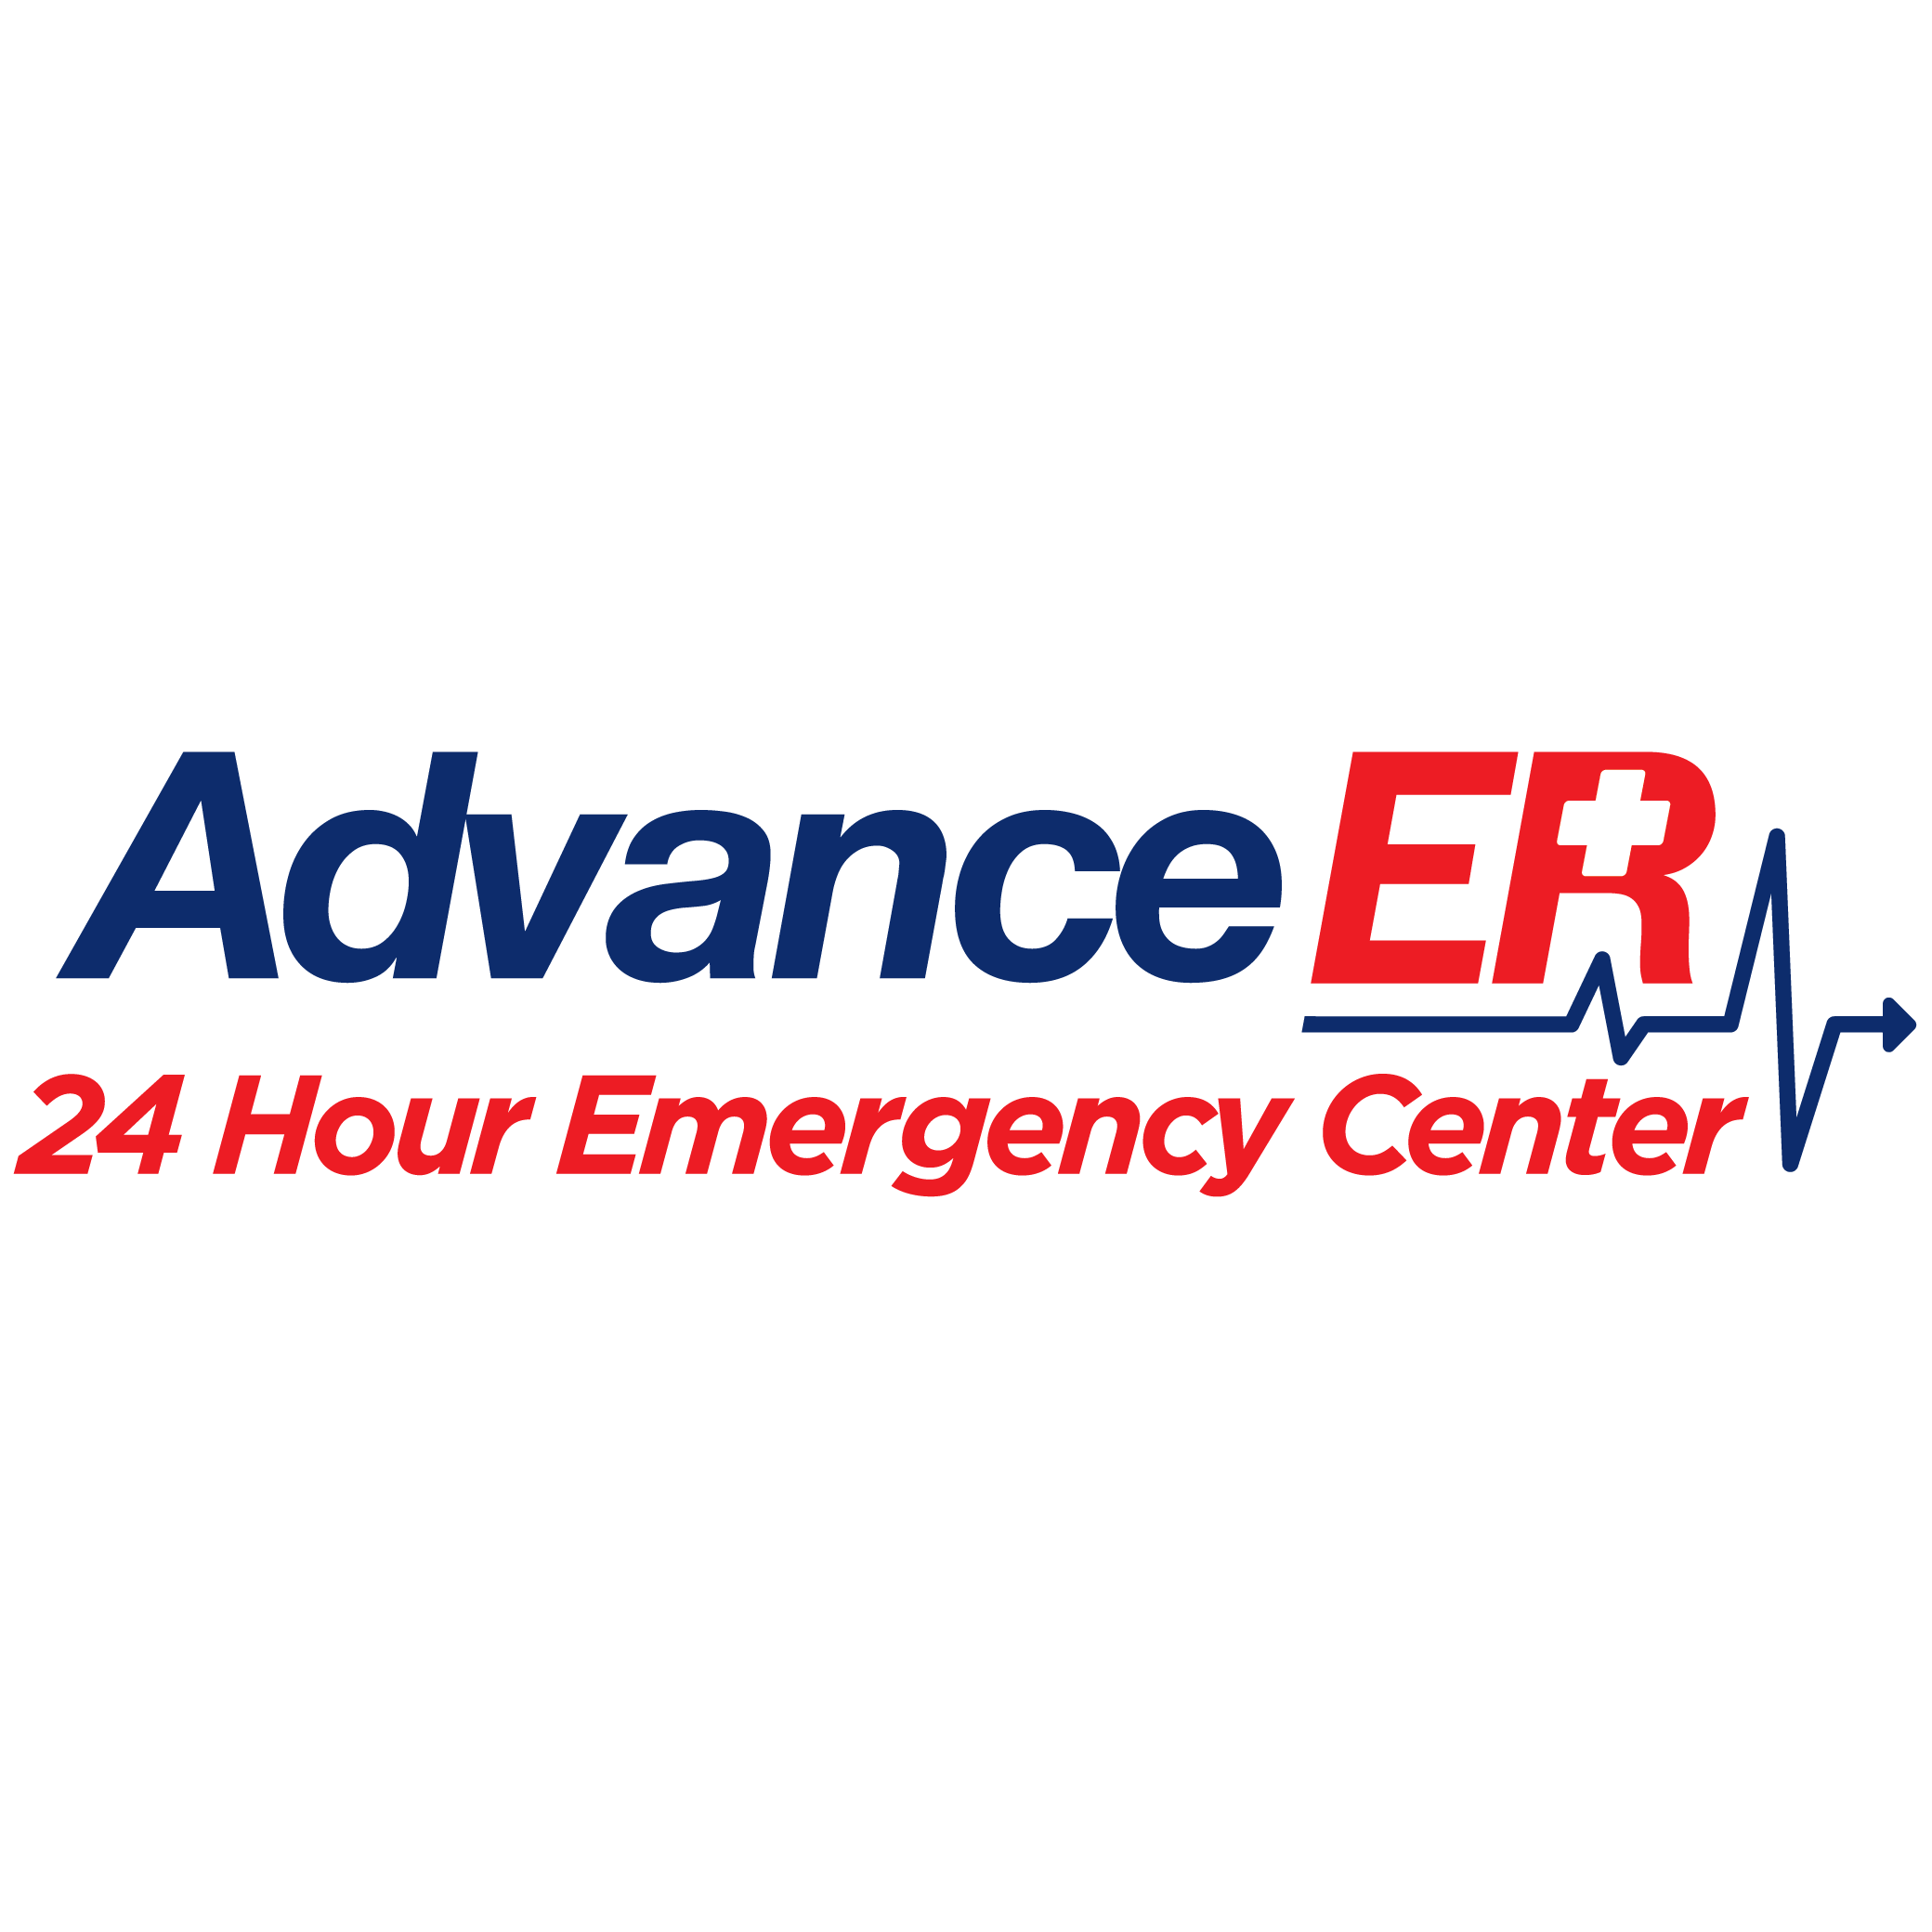 Advance ER - Park Cities